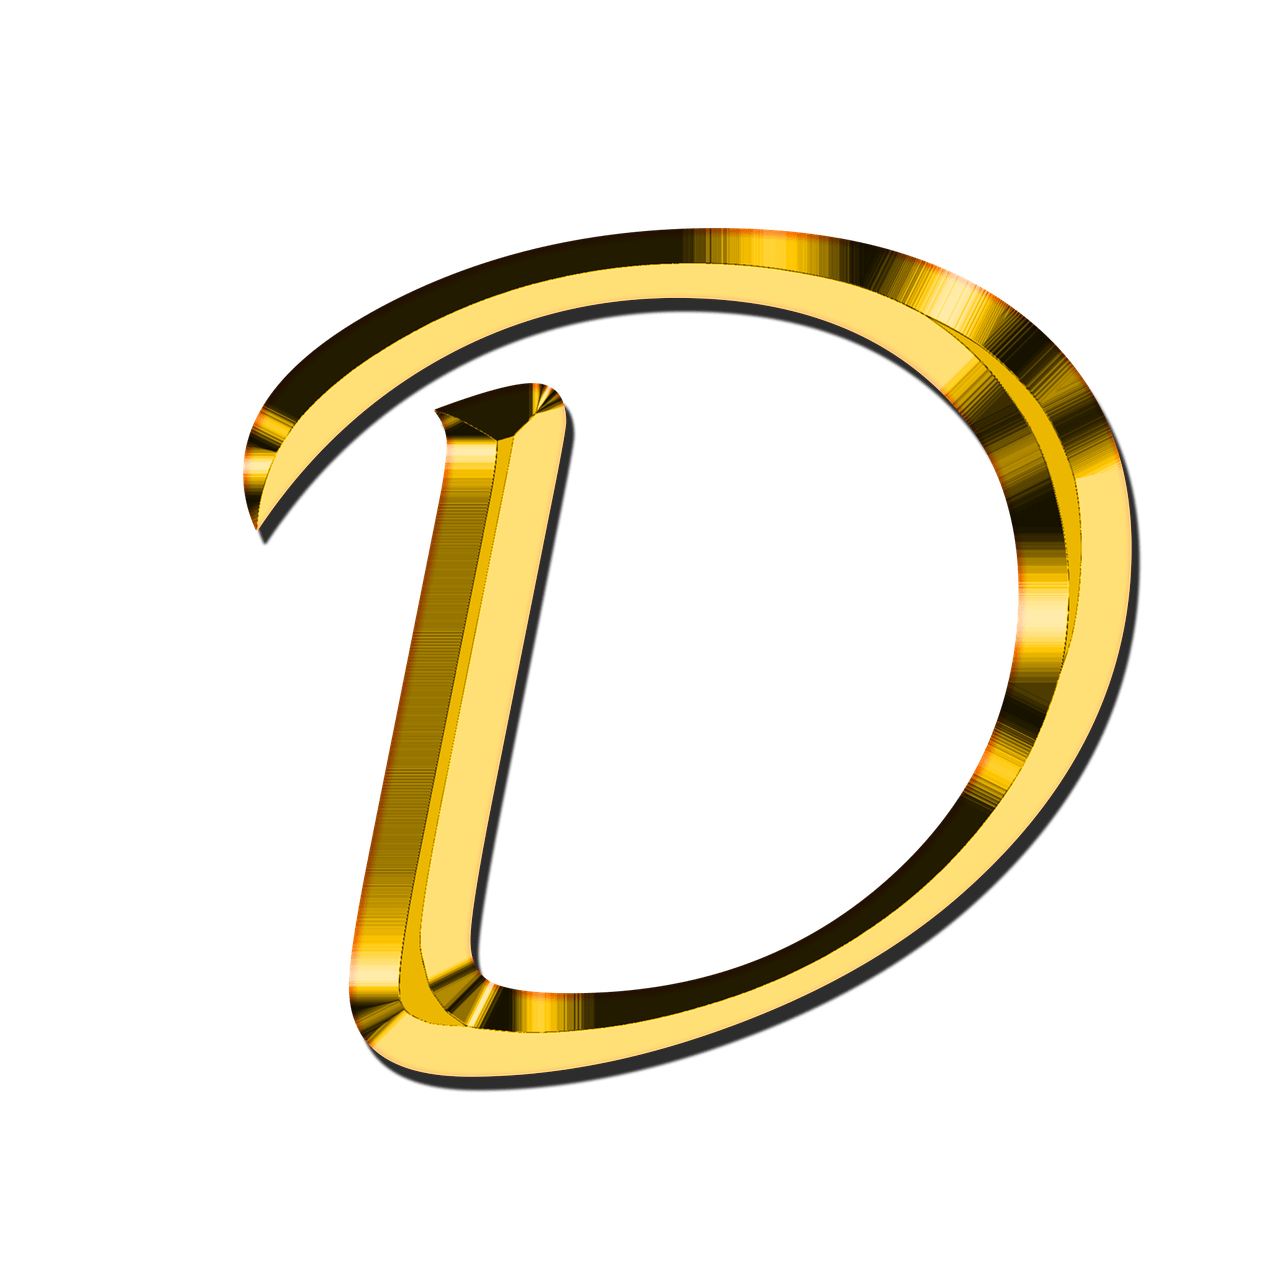 Capital letter png stickpng. D transparent latter vector royalty free